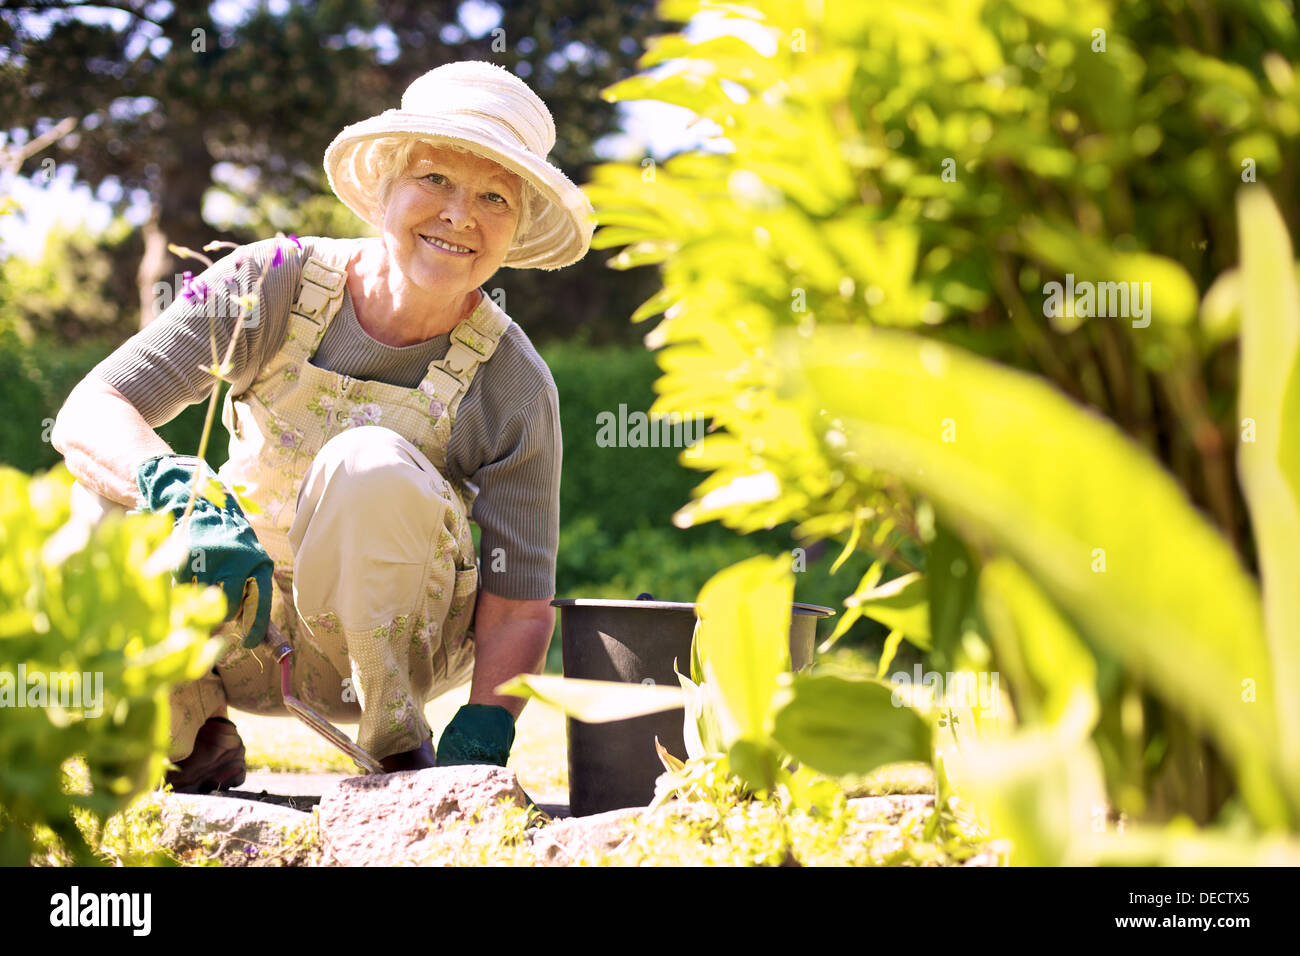 Happy elder woman with gardening tool working in her backyard garden - Stock Image